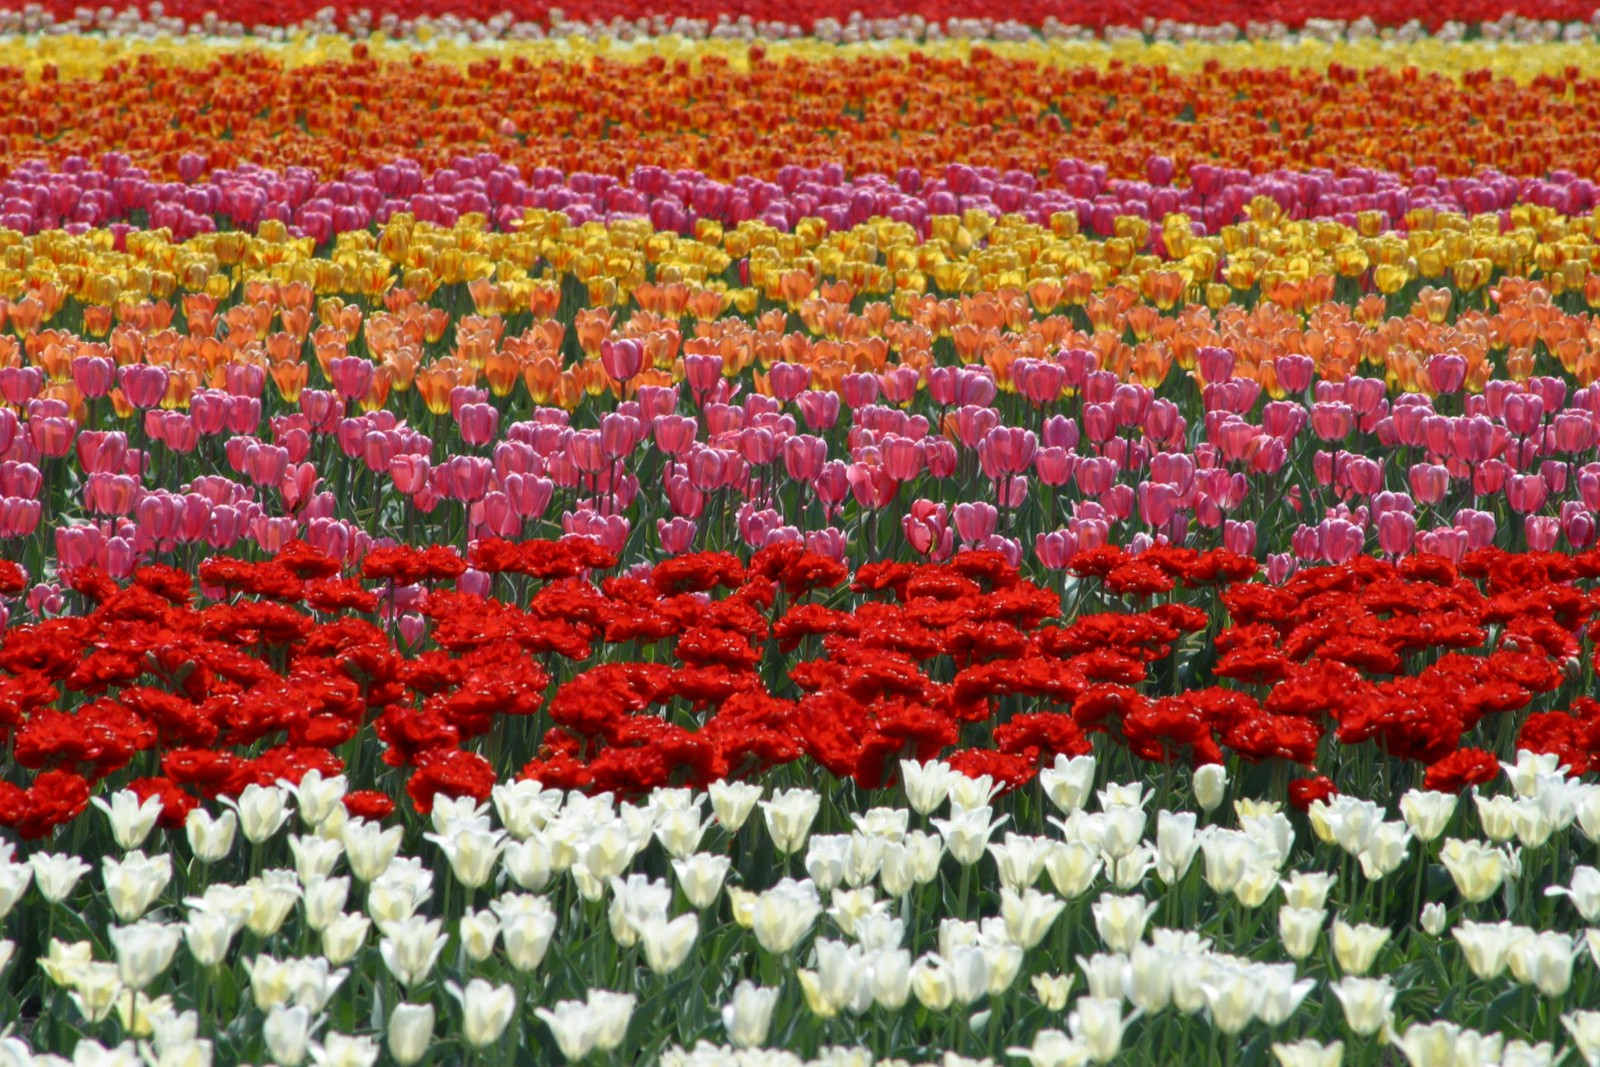 The row of colourful tulips